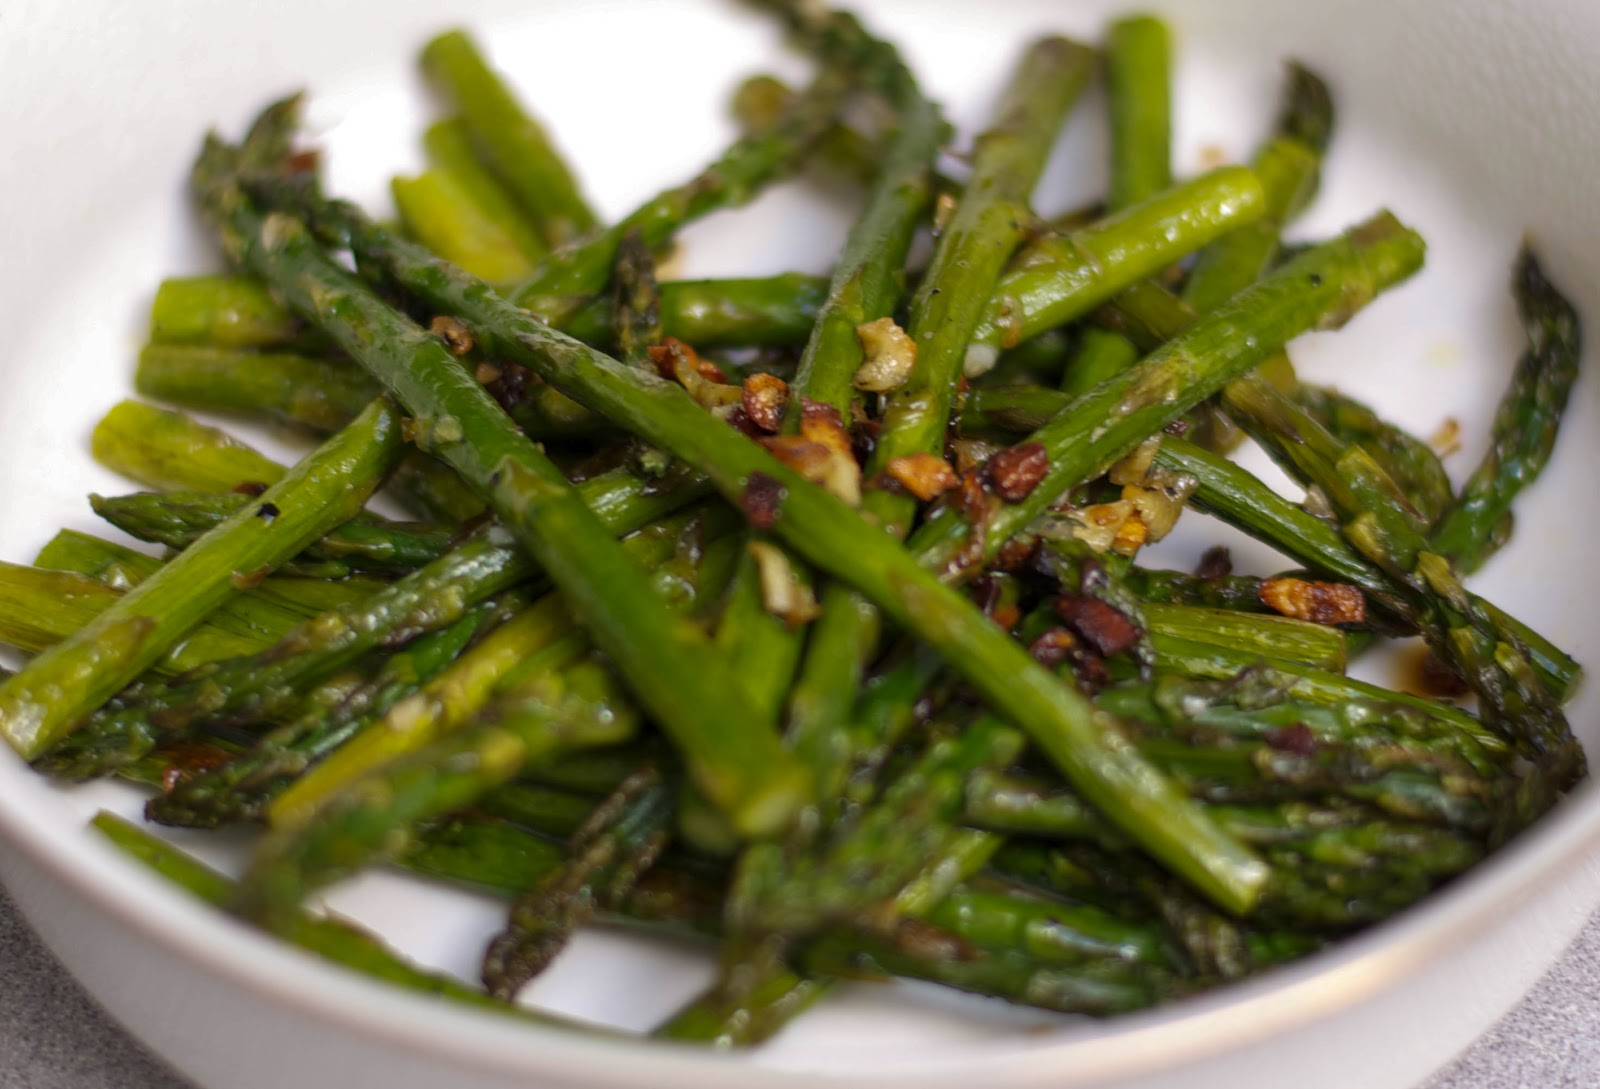 the asparagus roasted asparagus with miso roasted asparagus with dijon ...